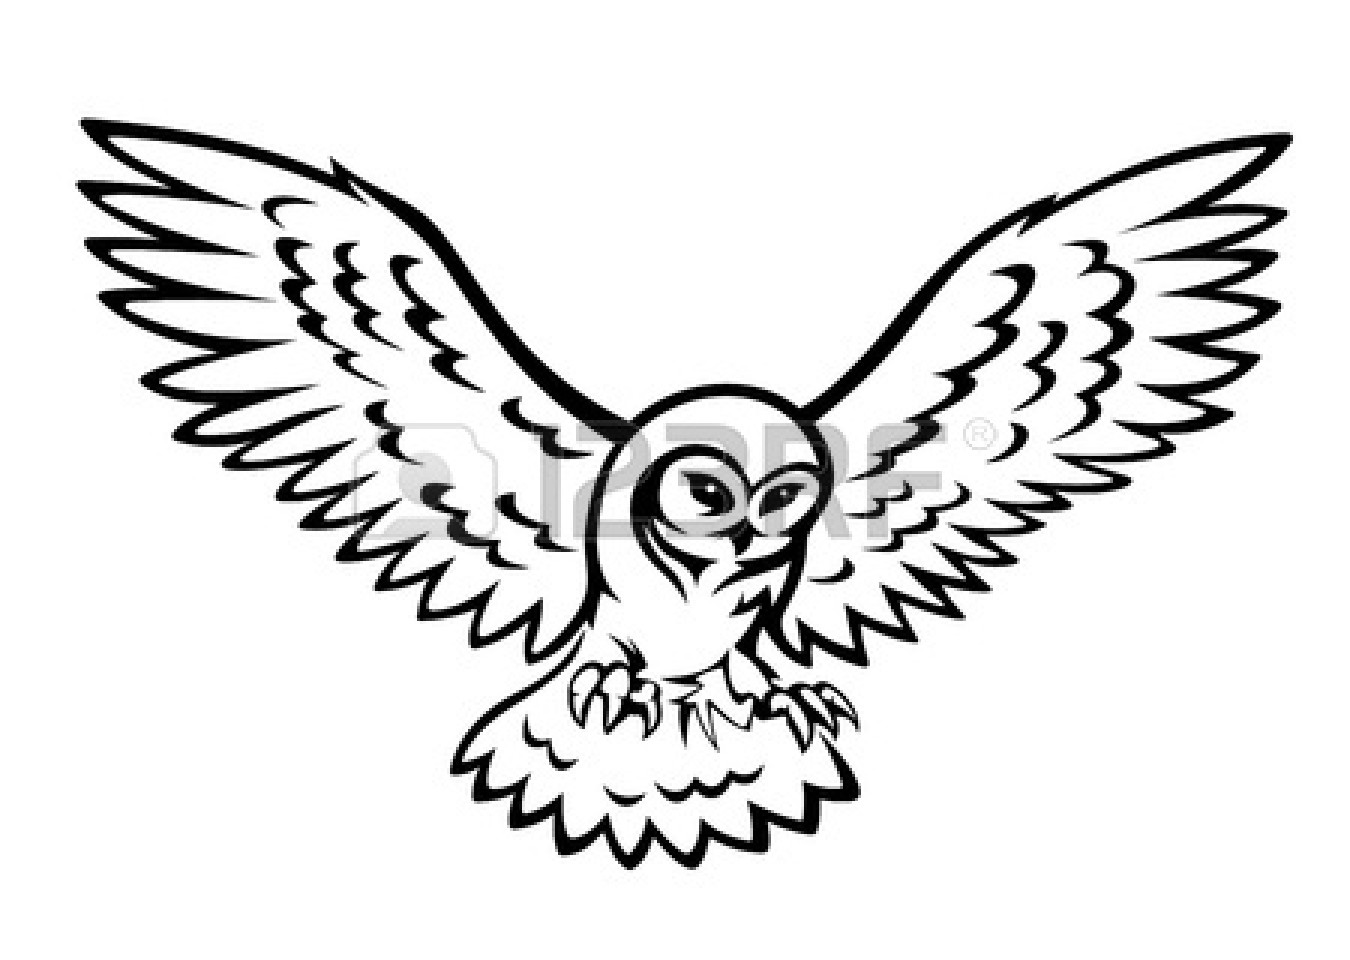 Owl Silhouette at GetDrawings.com | Free for personal use Owl ...